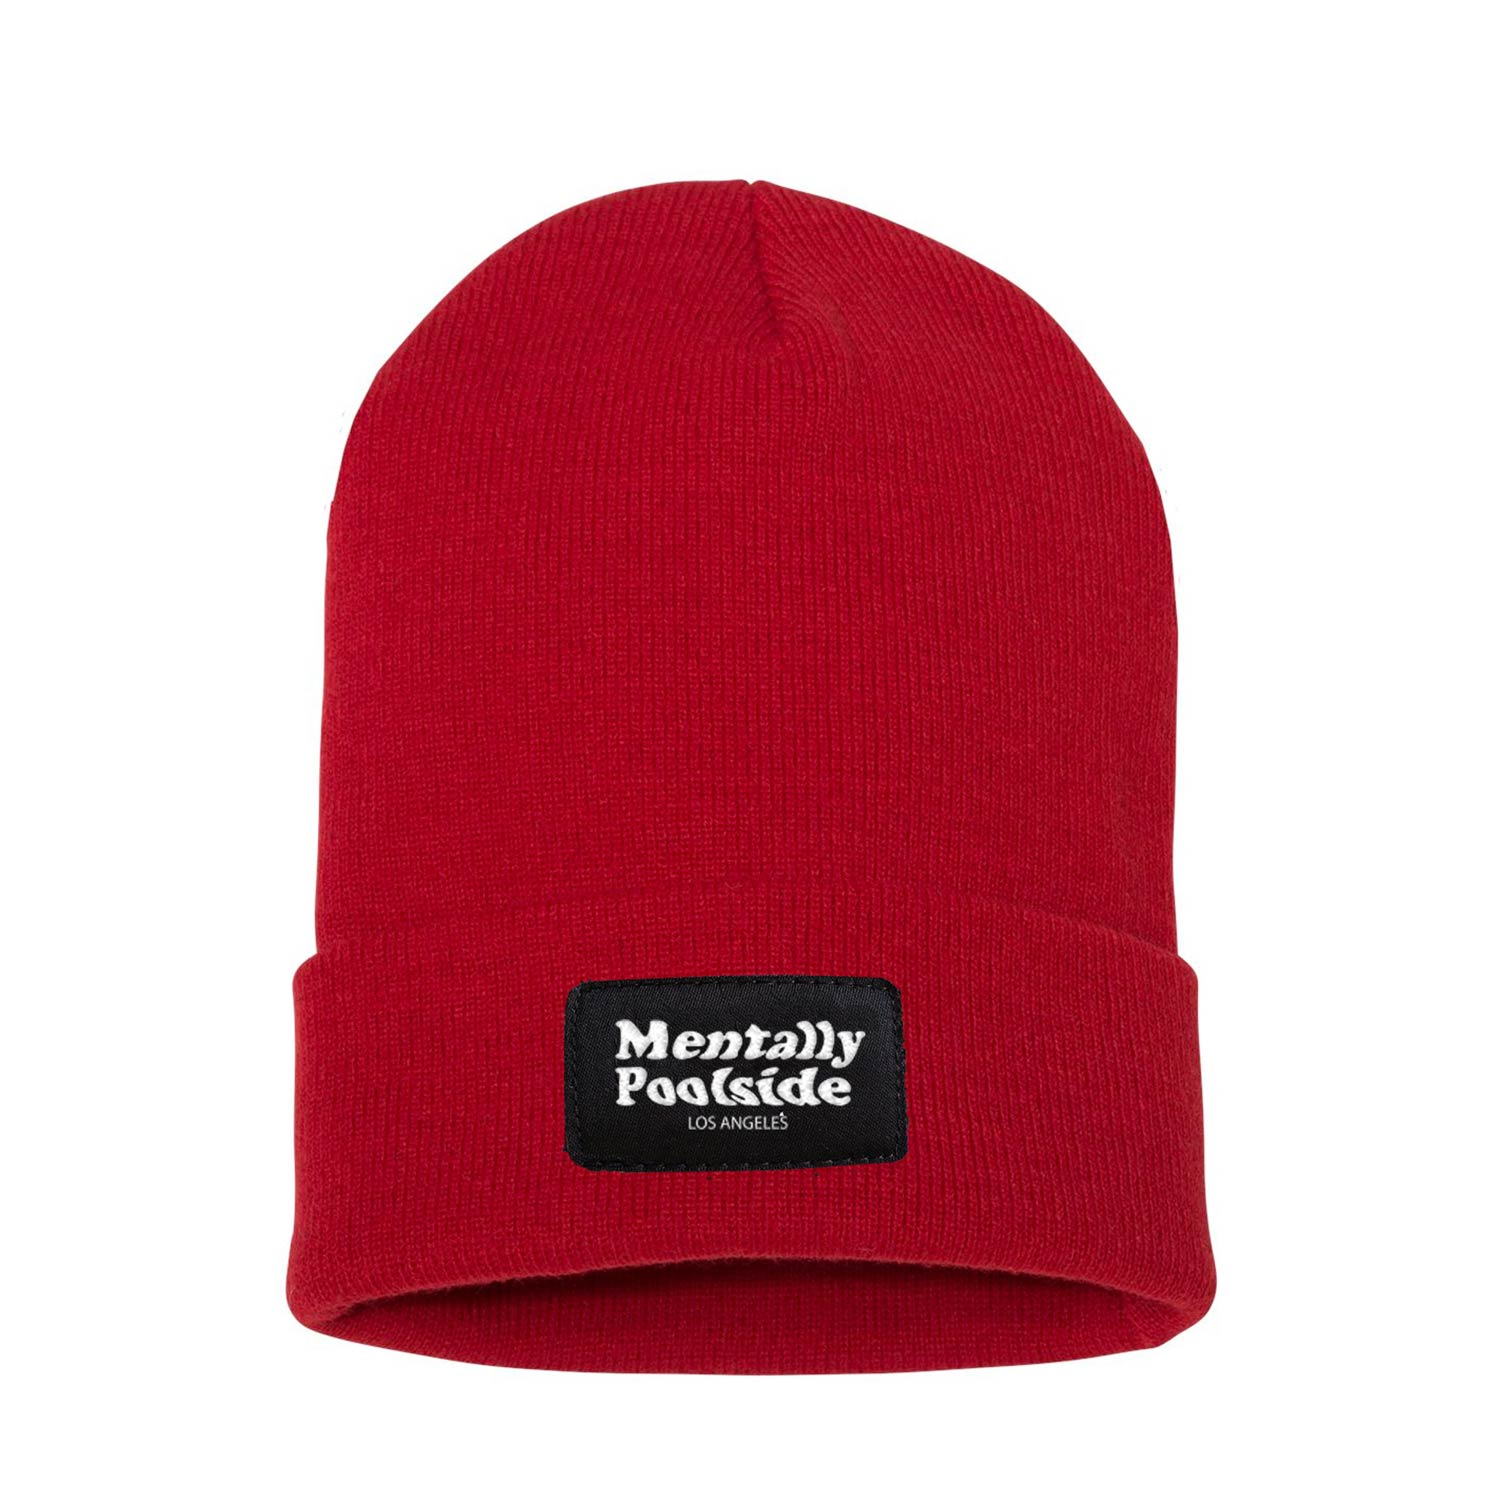 Mentally Poolside OG Beanie